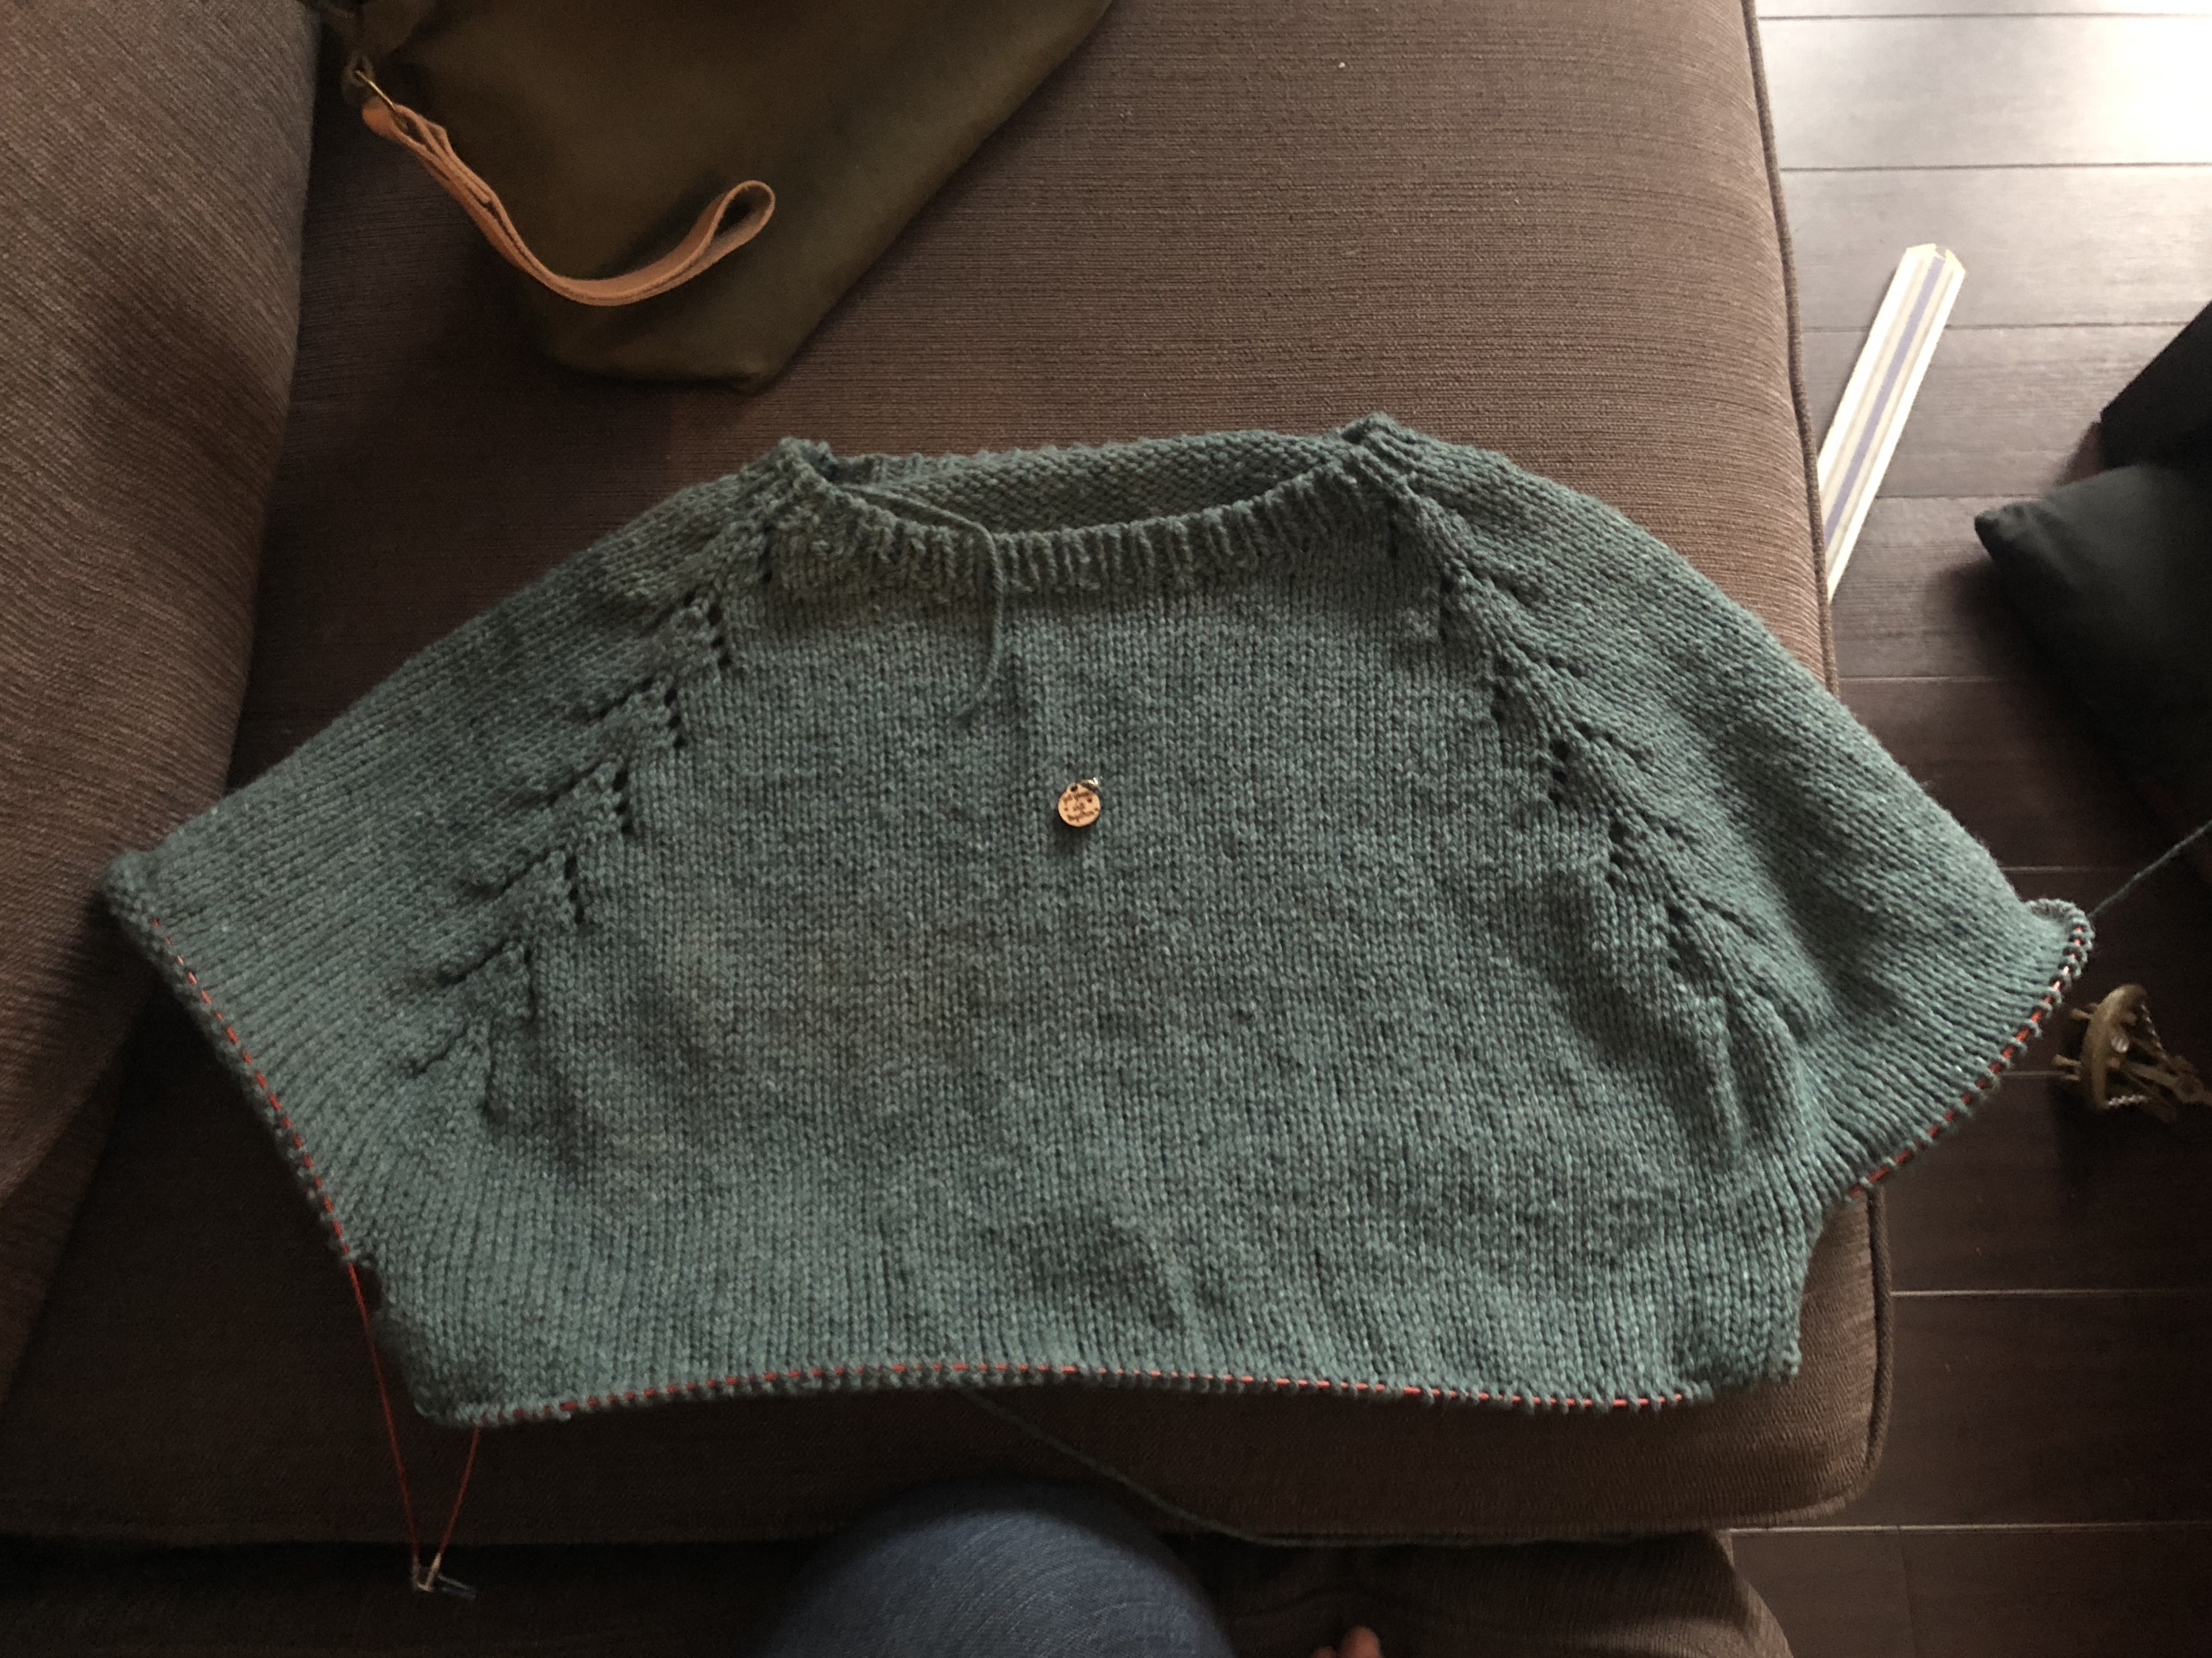 Image of a green knit sweater in progress, on a brown couch.